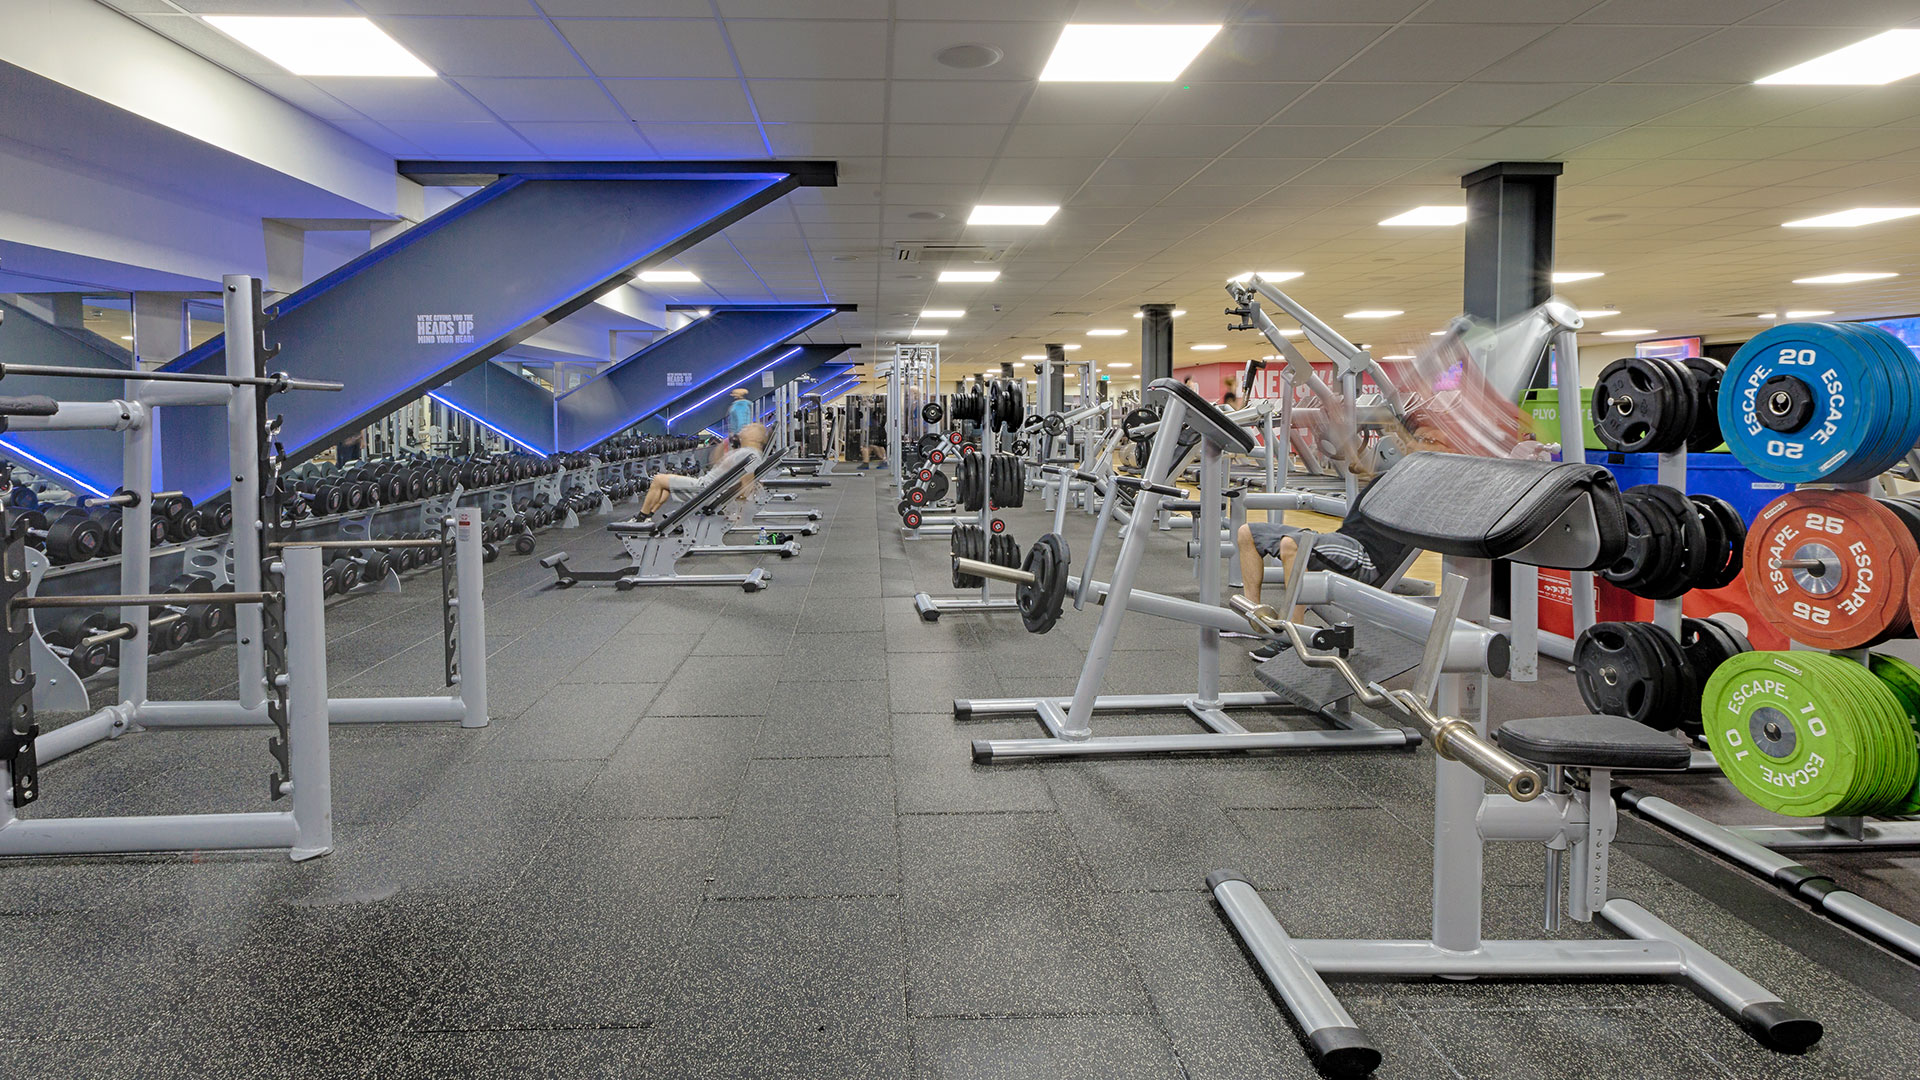 How to Save on Escalating Gym Membership Fees